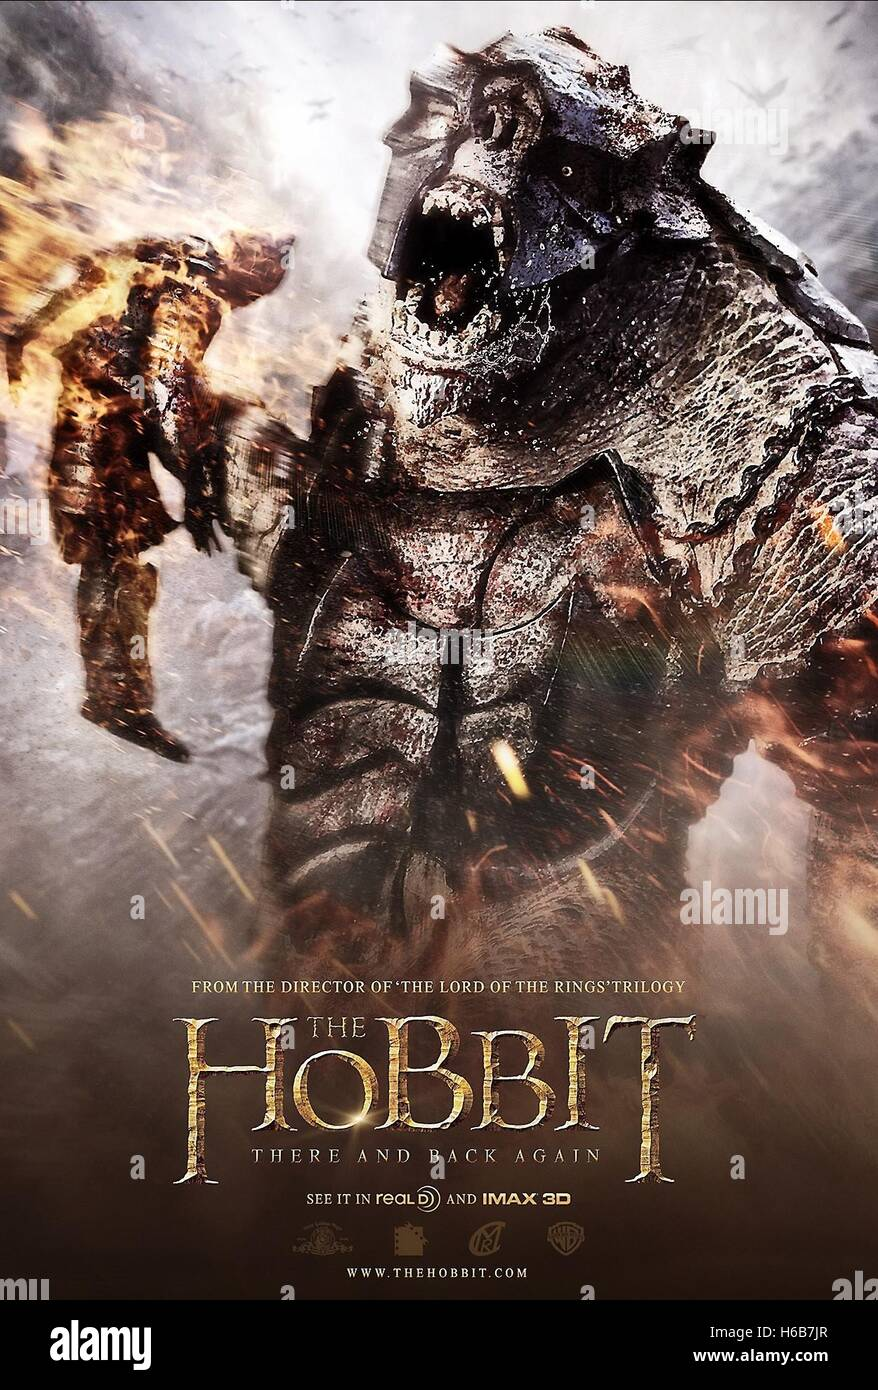 Movie Poster The Hobbit The Battle Of The Five Armies 2014 Stock Photo Alamy